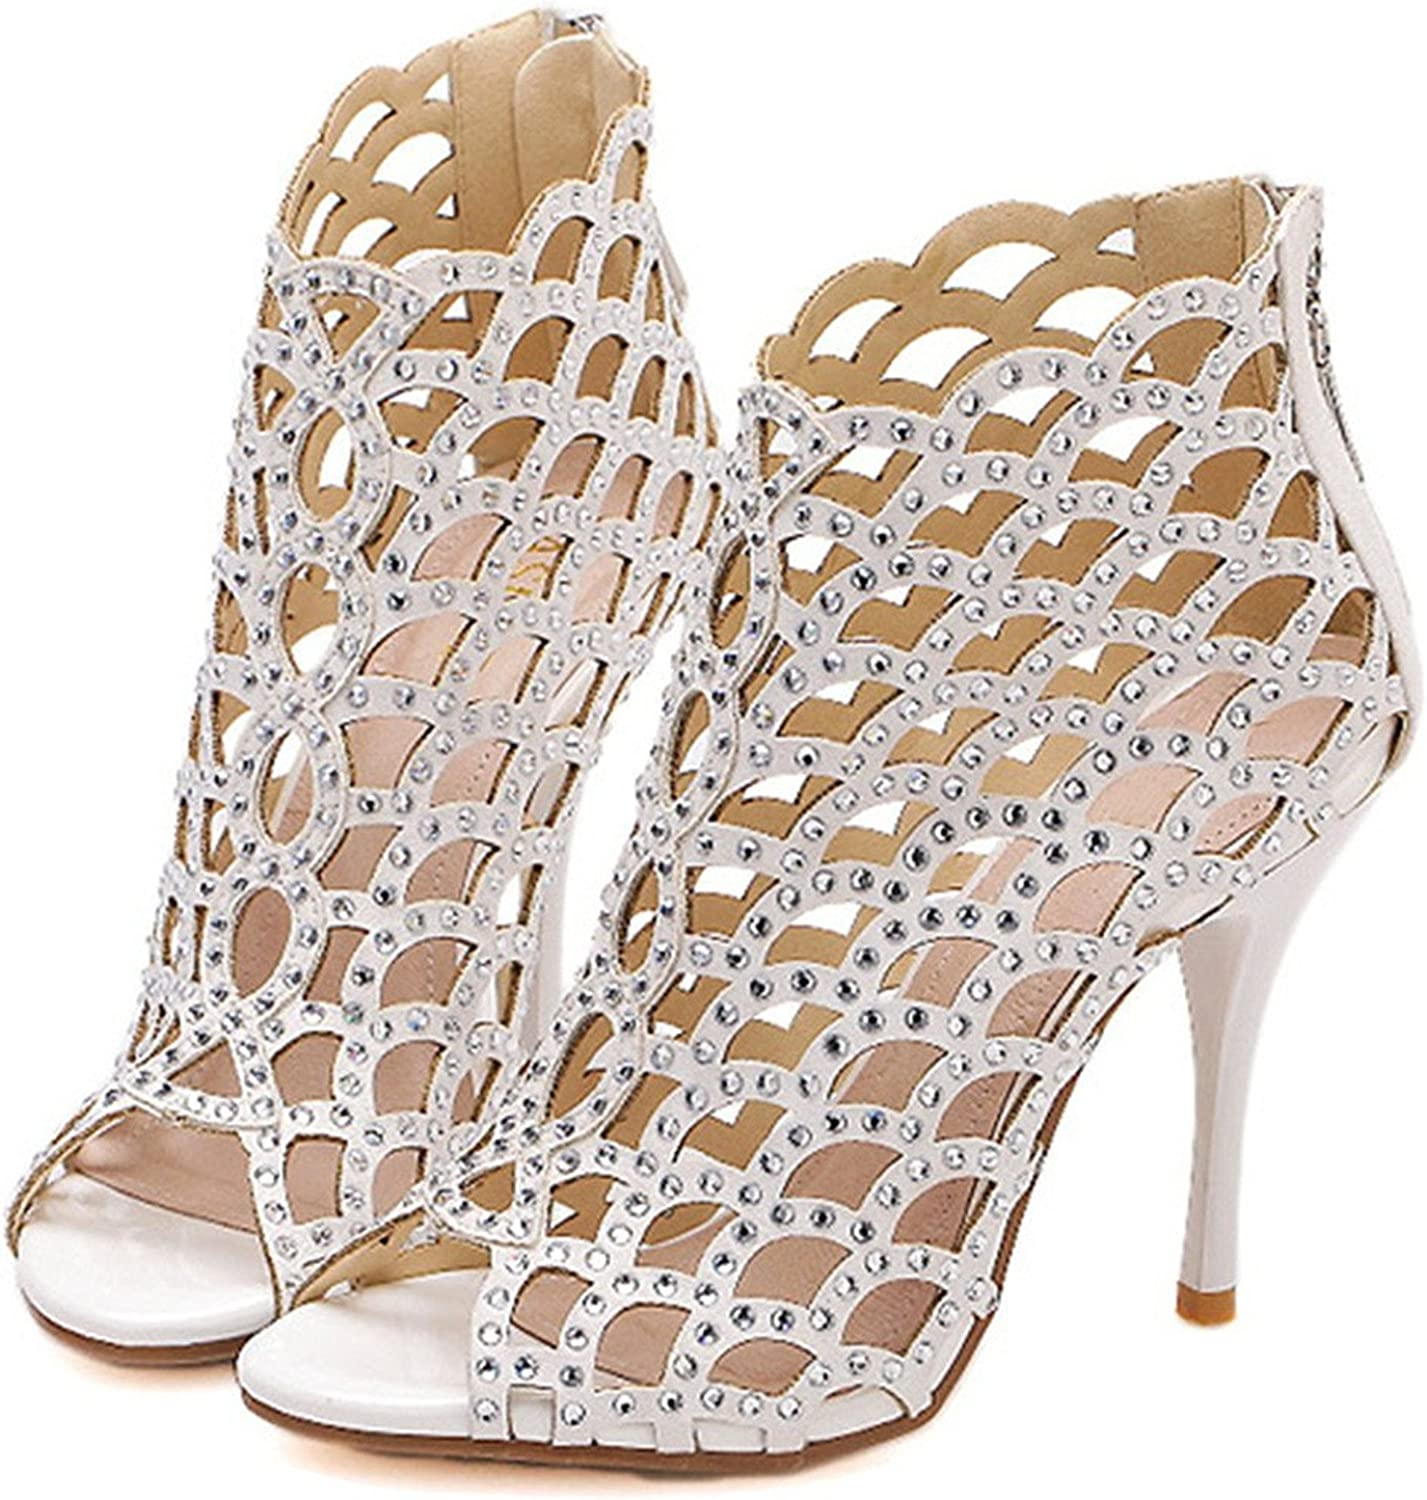 Reinhar Womens Sparkle Sandals Stiletto Sandals Cutouts Night Club Party Dress High Heels White10 B(M) US